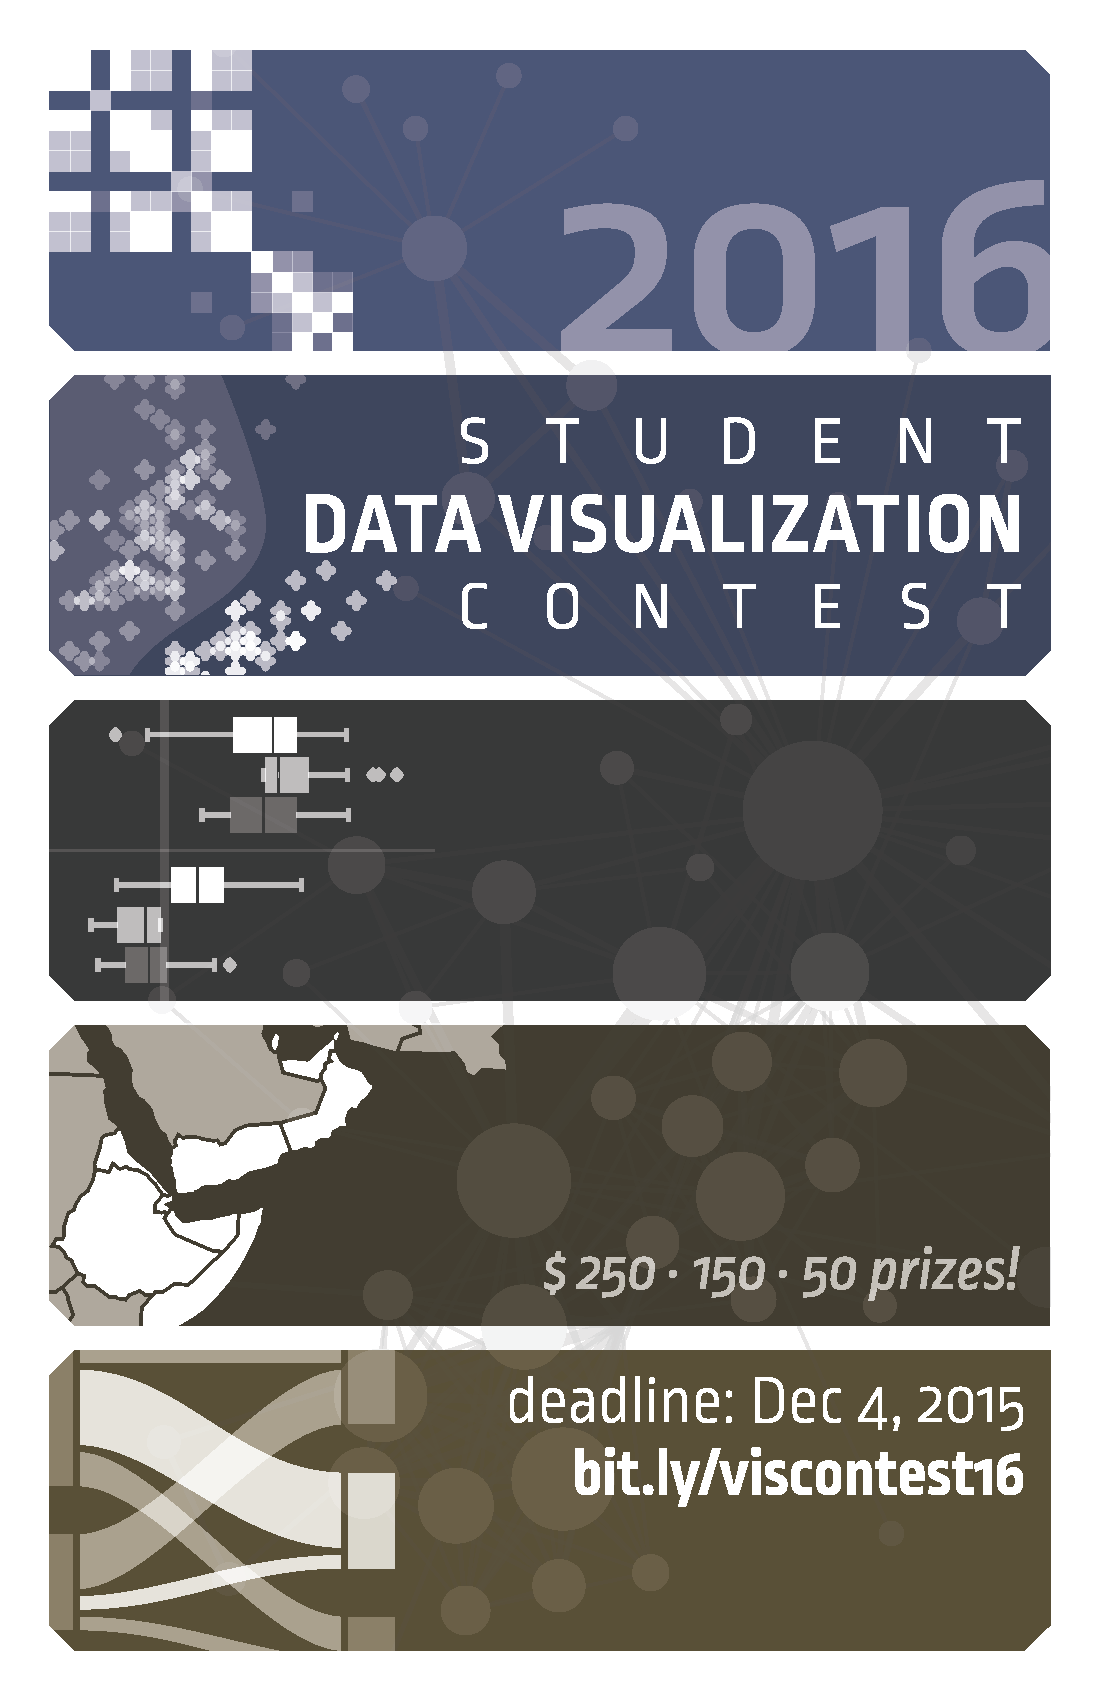 2016 Student Data Visualization Contest